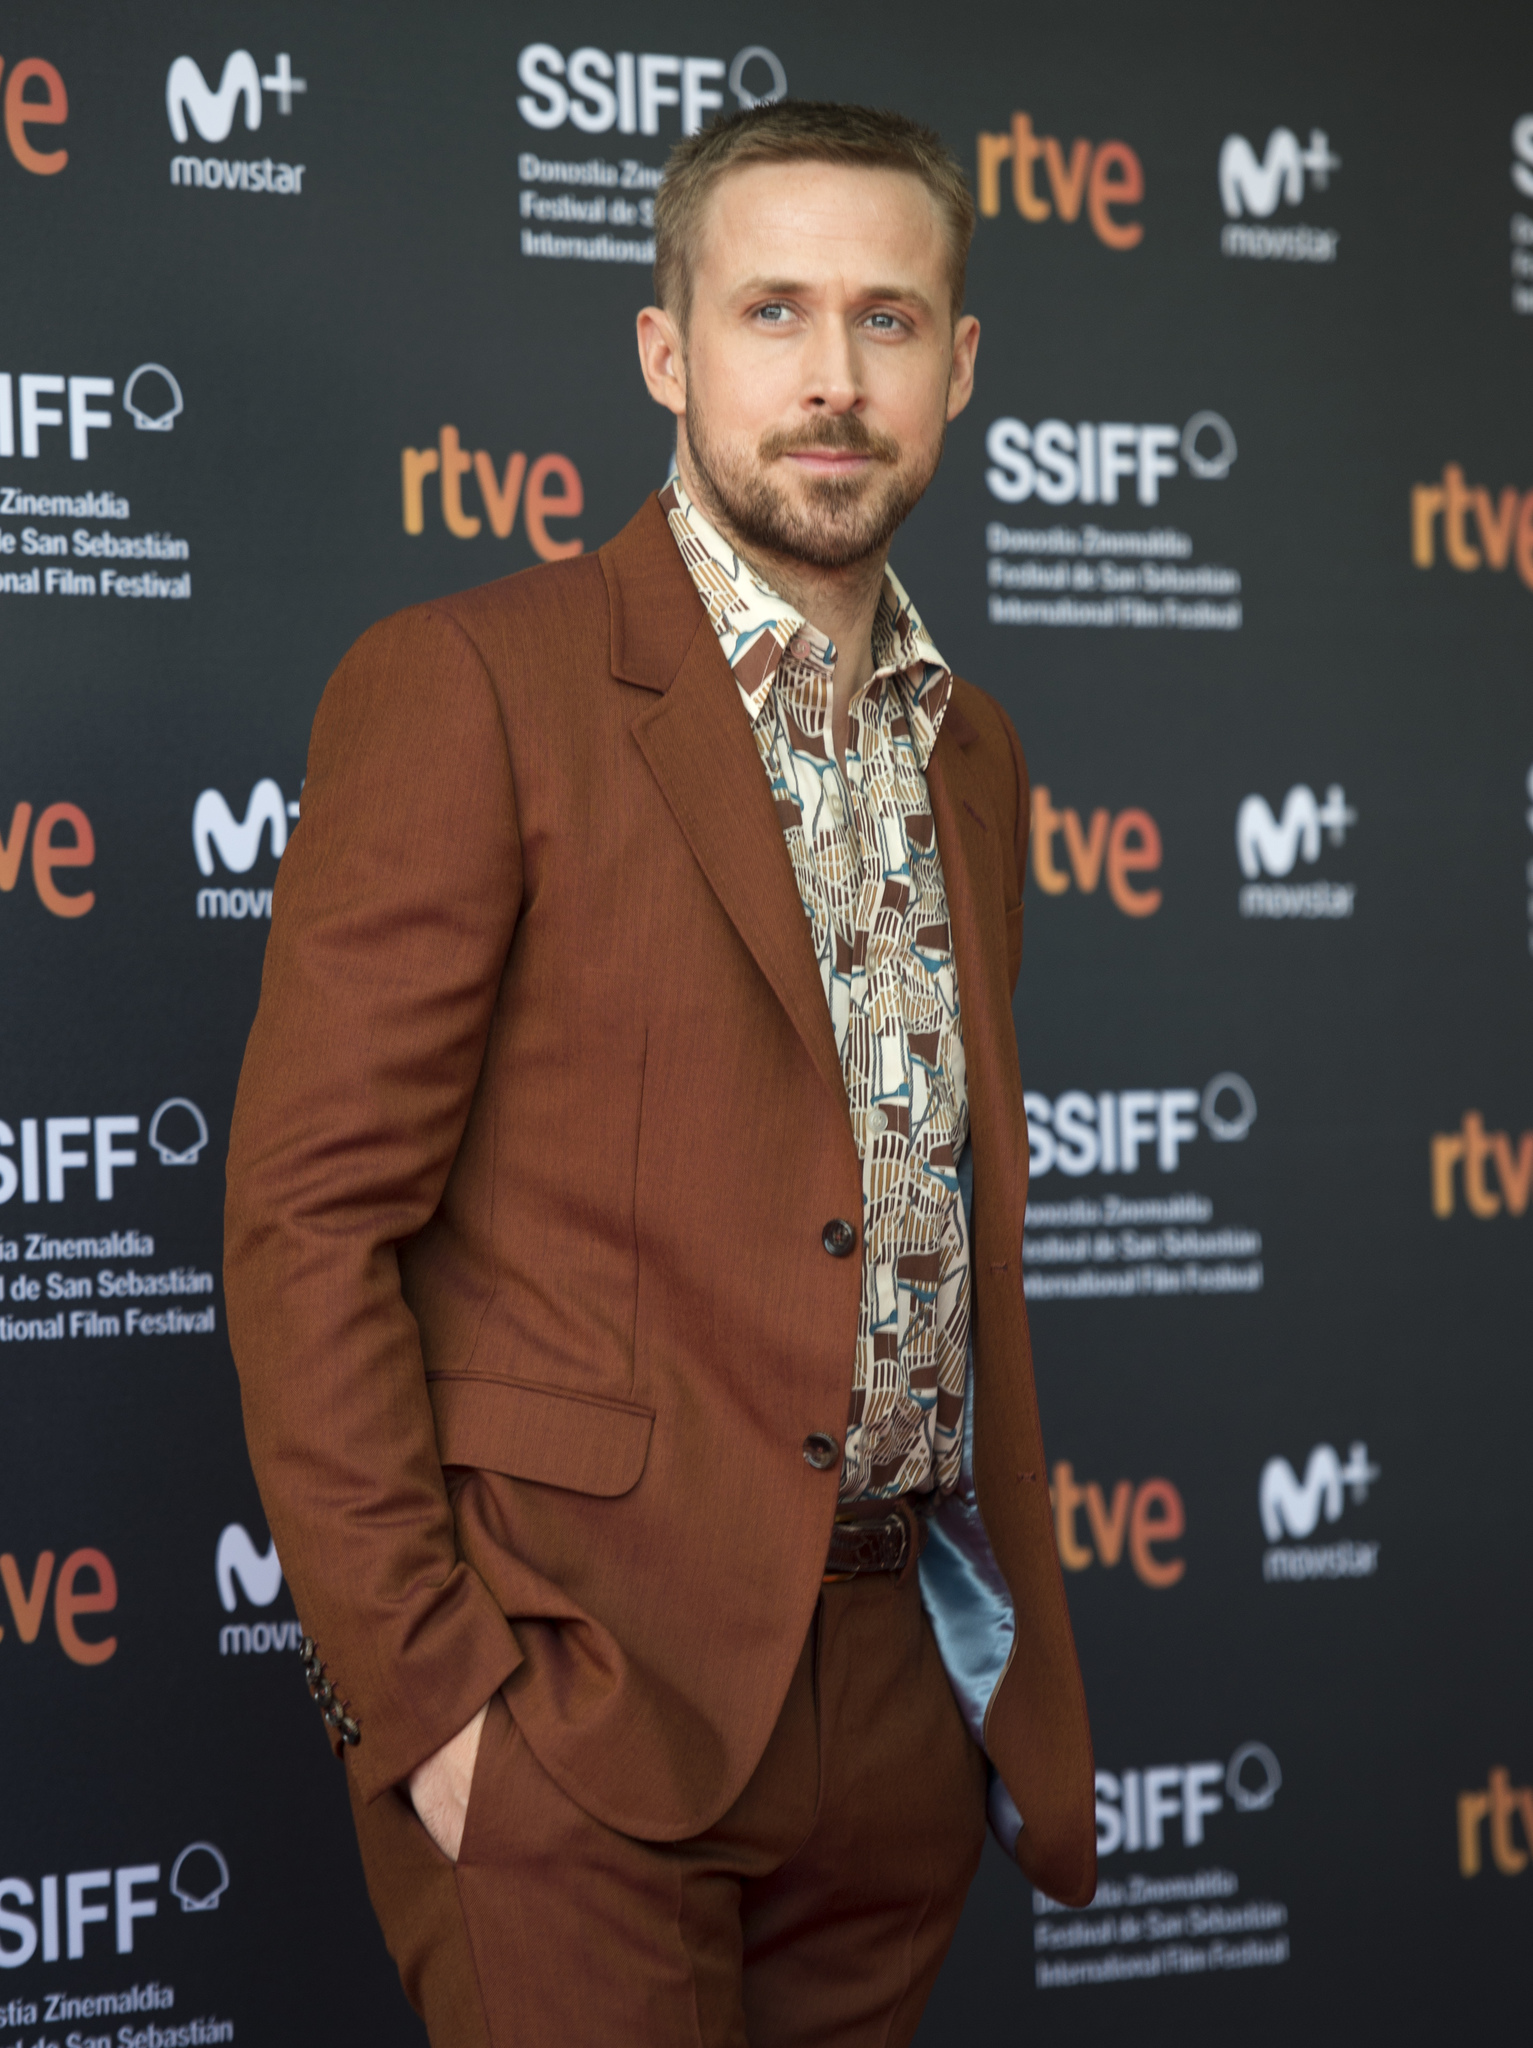 Ryan Gosling at an event for First Man (2018)